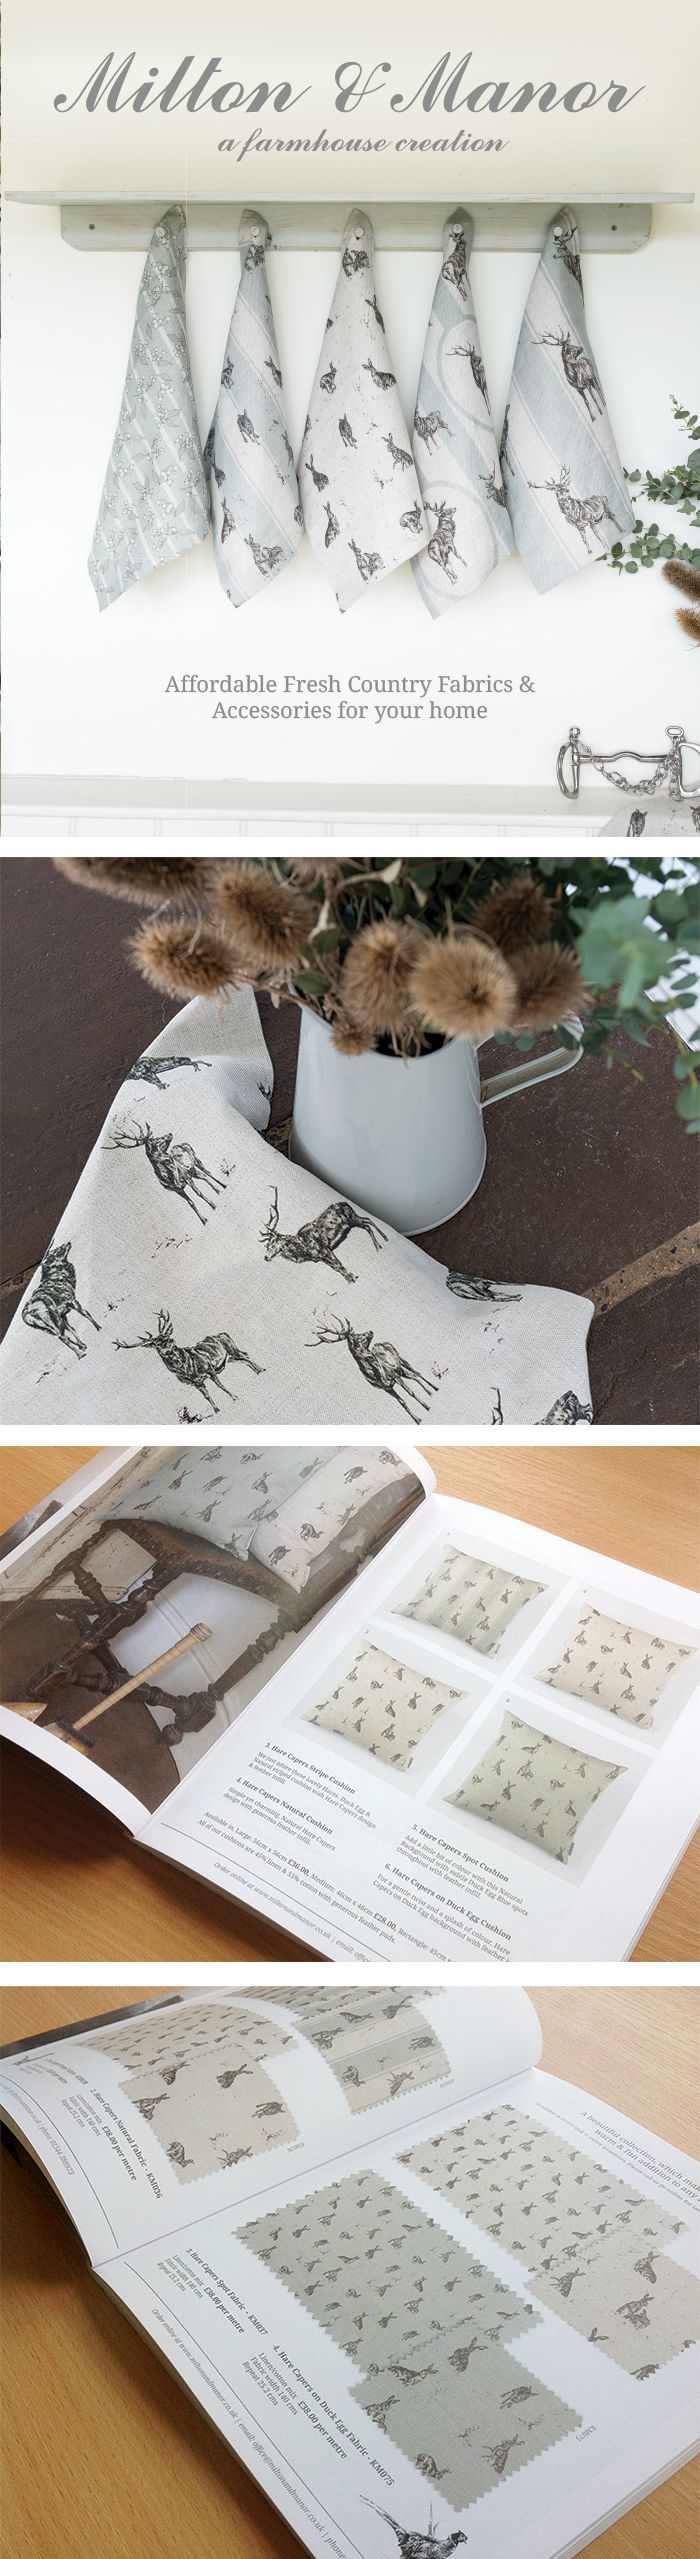 Milton and Manor 2013 fabric #catalogue by Orphans Press #Print